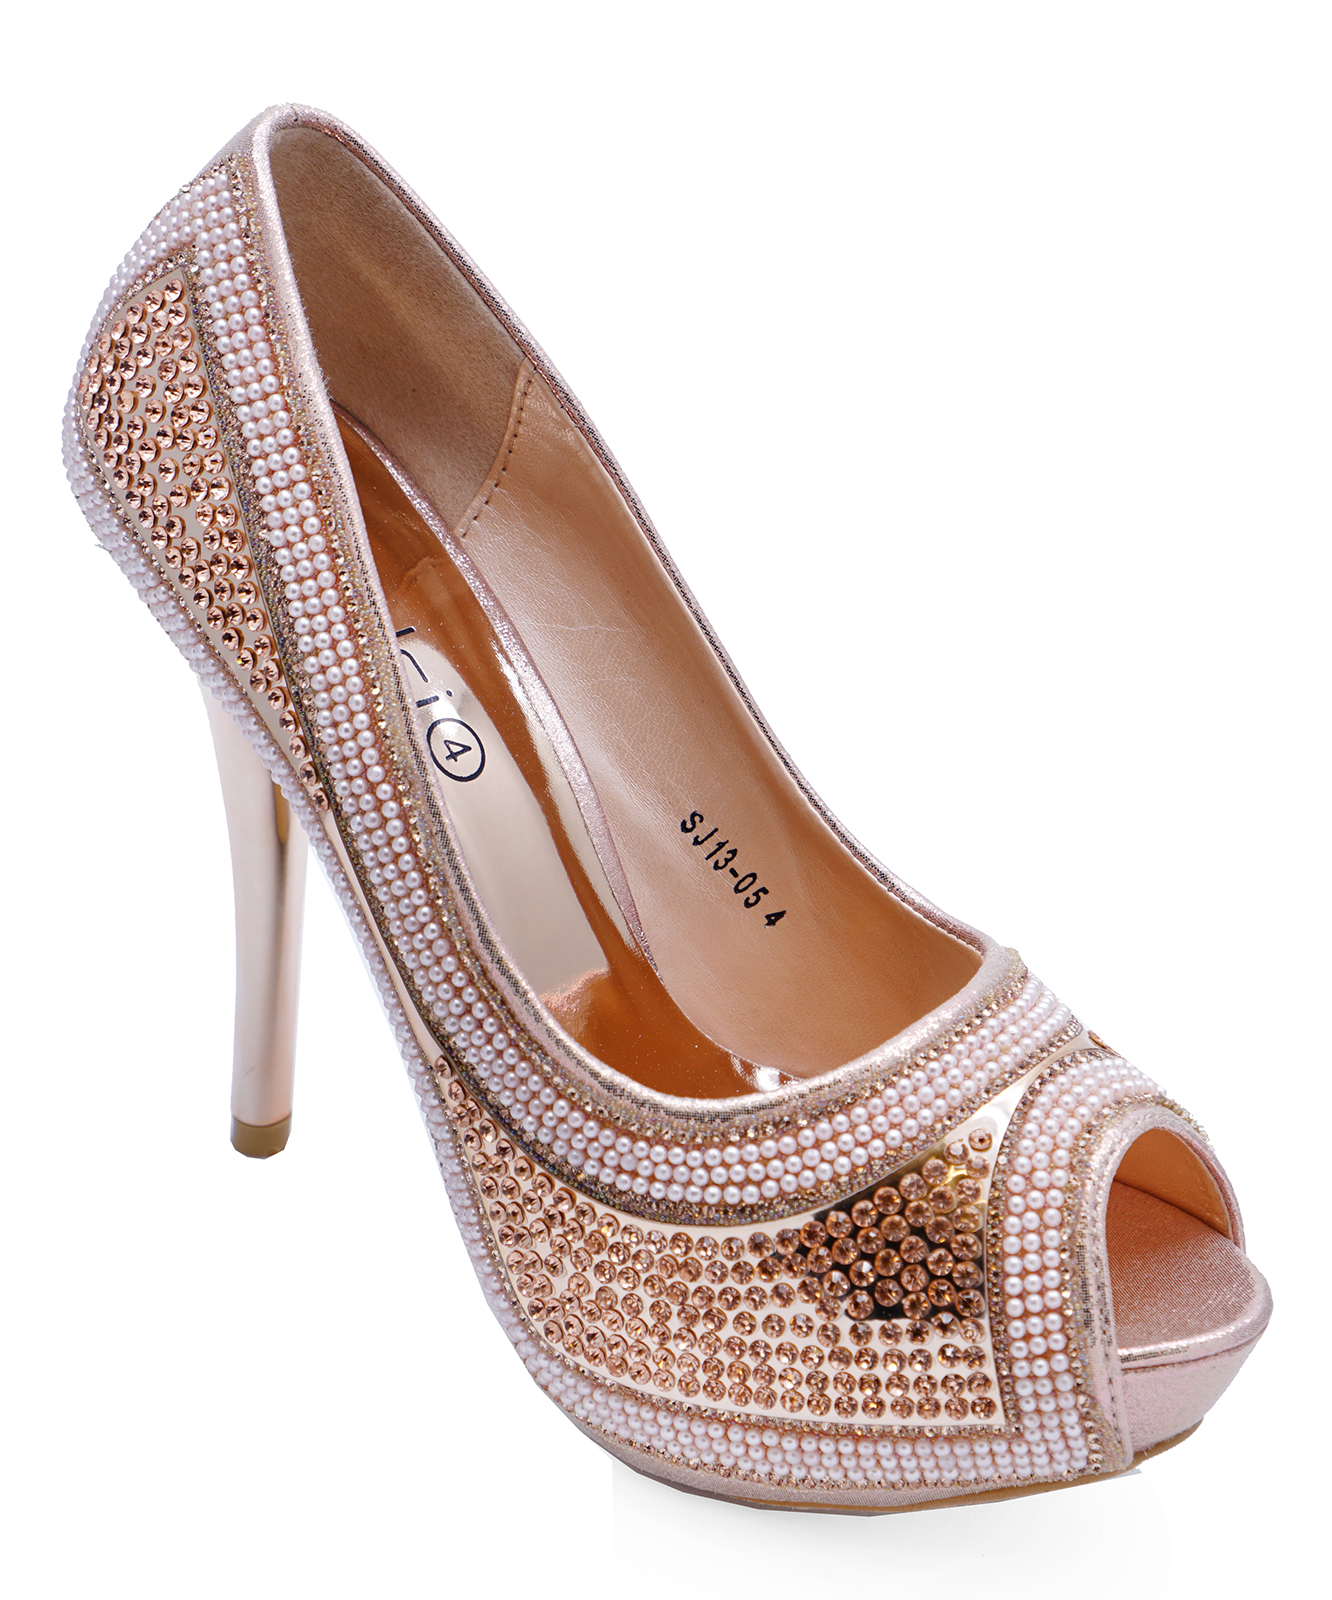 6231fb43c8d2 Sentinel WOMENS ROSE GOLD DIAMANTE PLATFORM OPEN-TOE STILETTO SLIP-ON SHOES  SIZES 3-